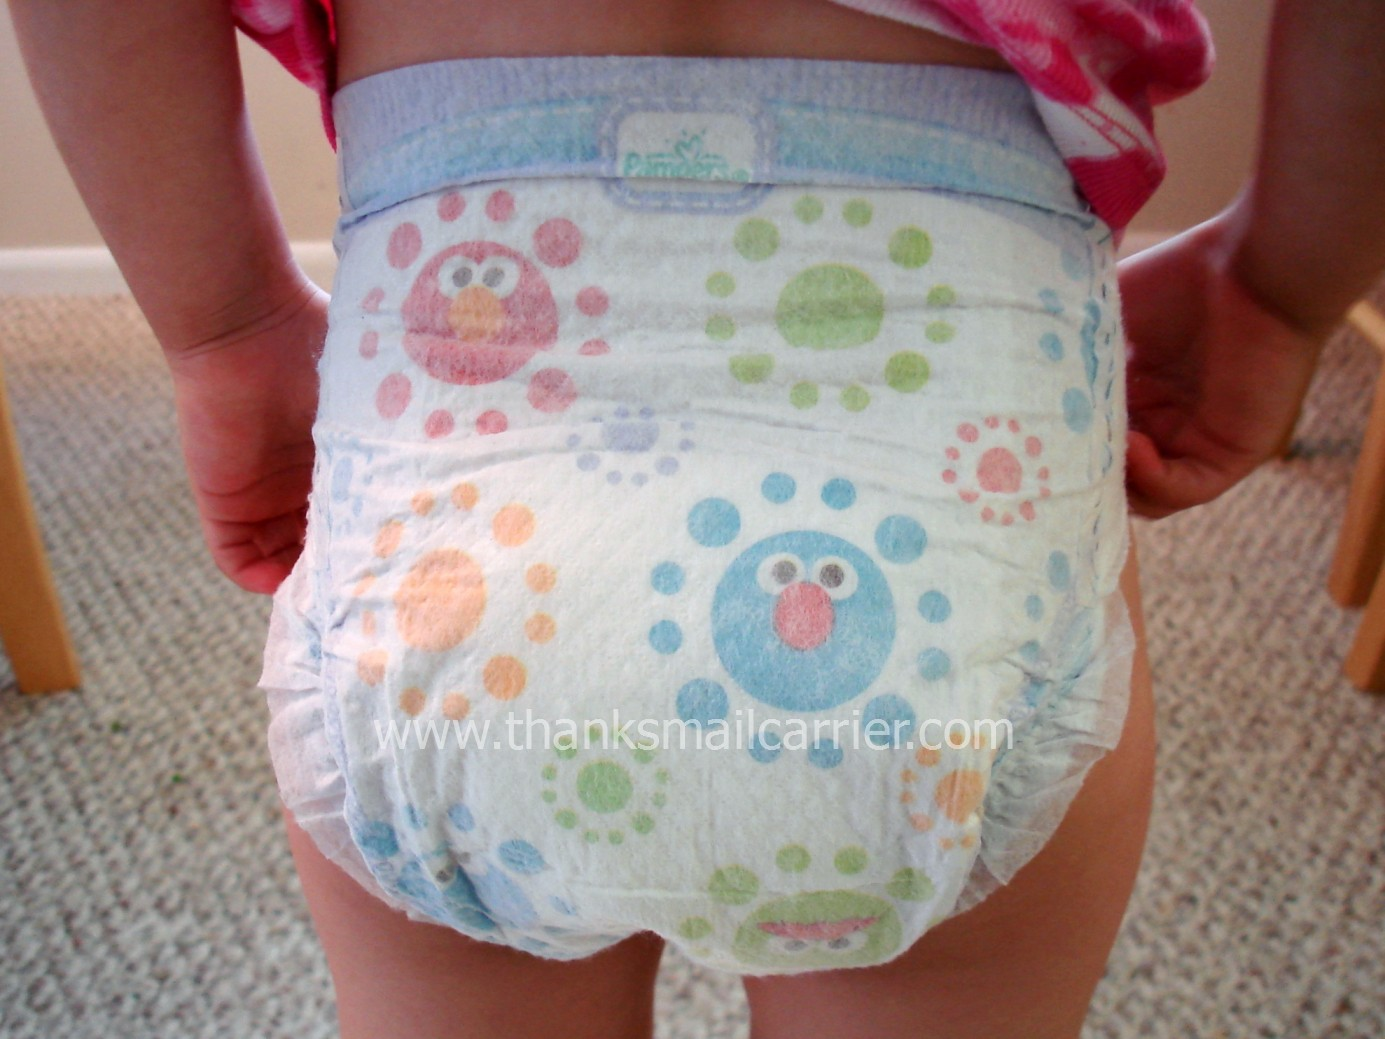 Girls in pampers diapers pampers cruisers diapers new